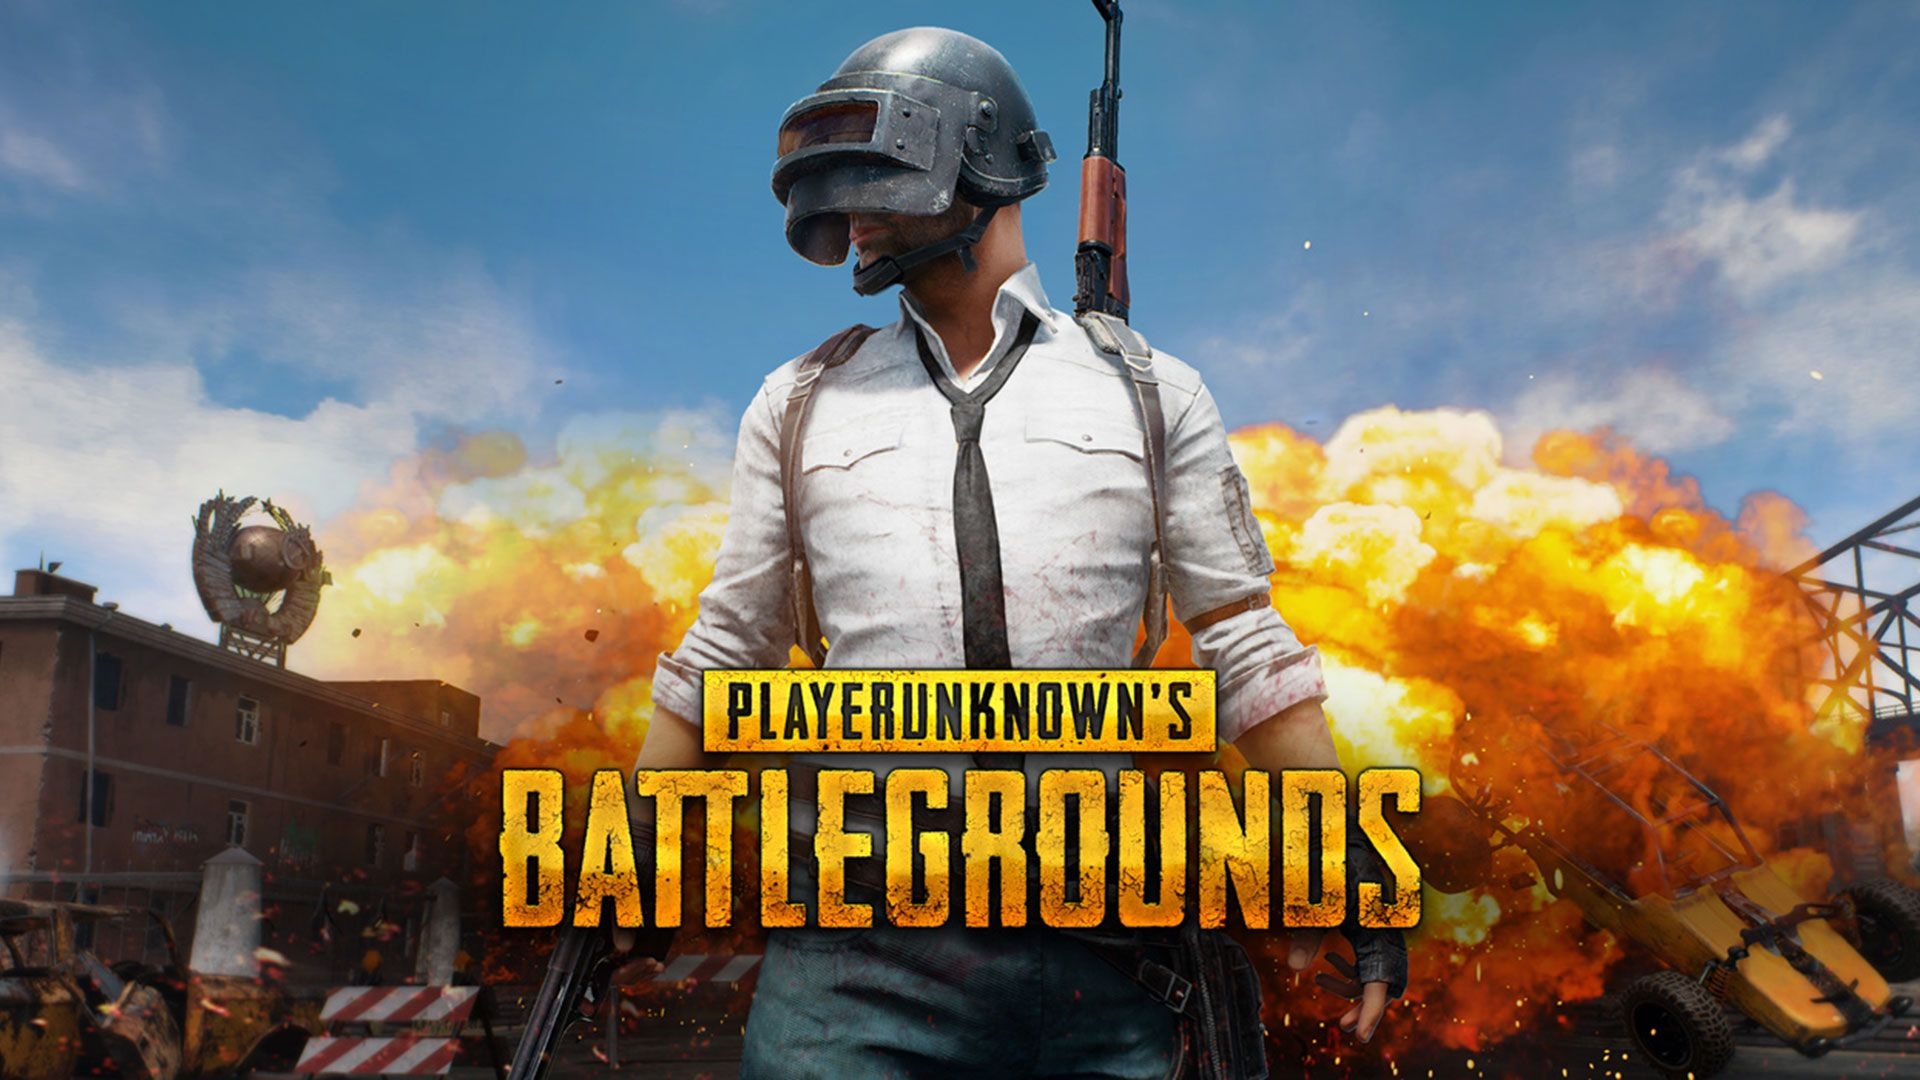 Pubg Hd Pics For Mobile: Pubg Wallpapers Full Hd On Wallpaper 1080p HD